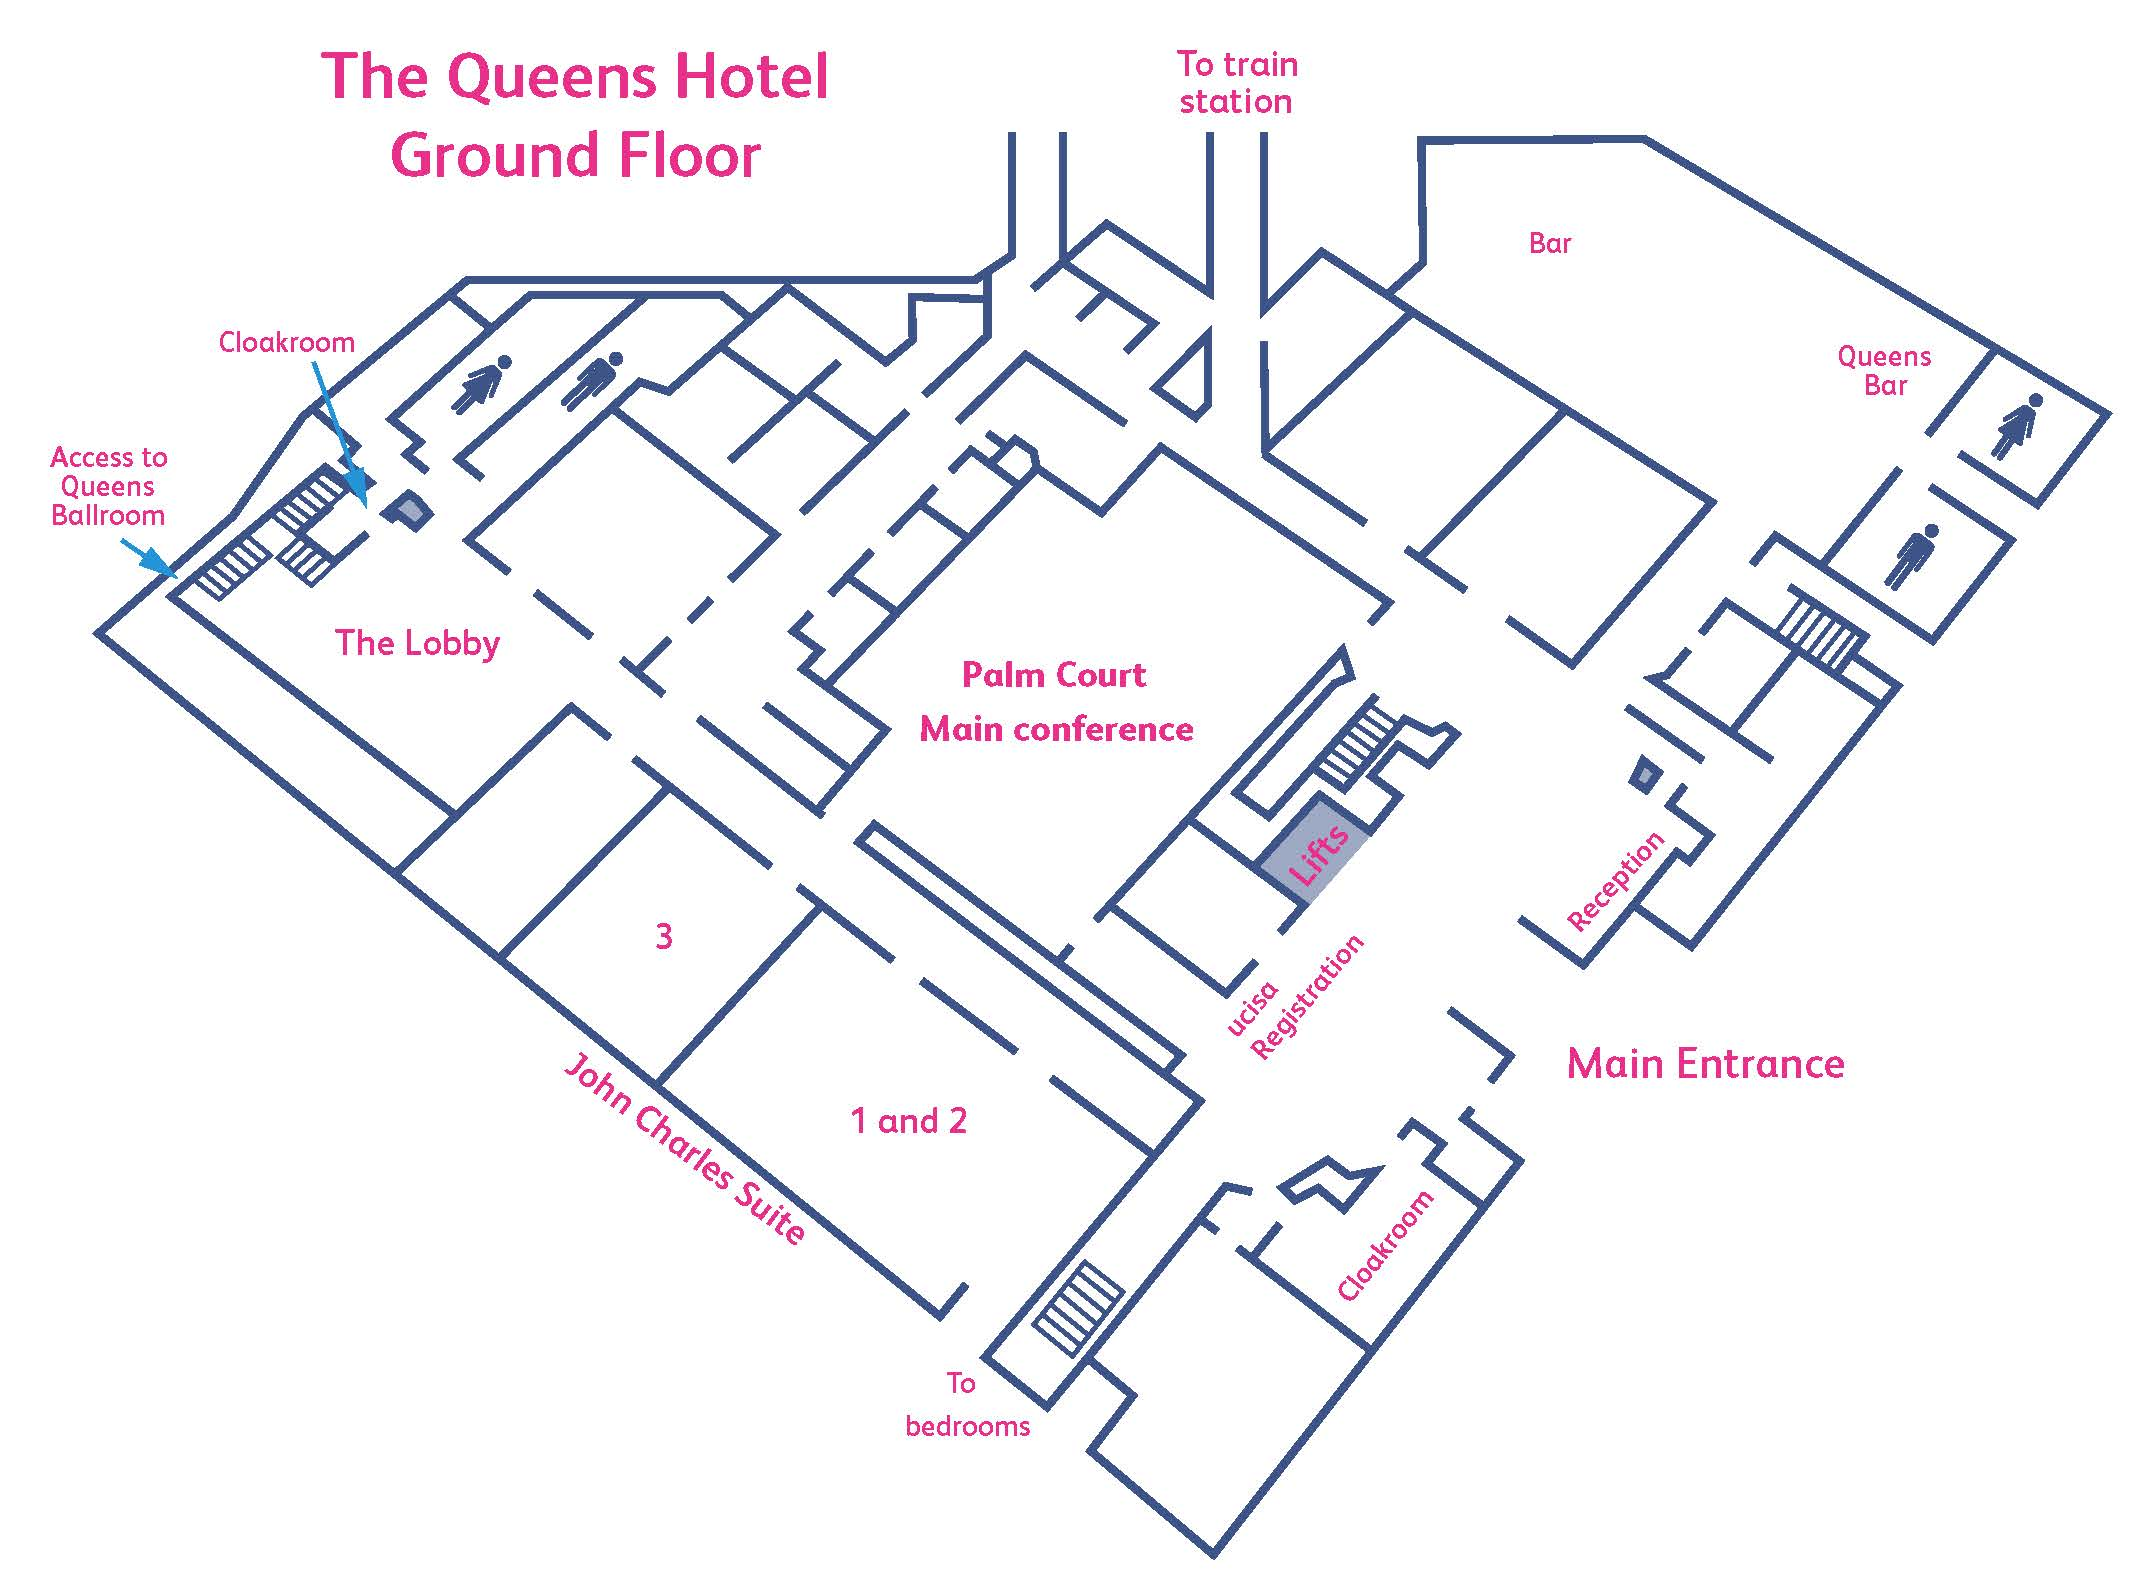 Ground floor layout of the The Queens hotel